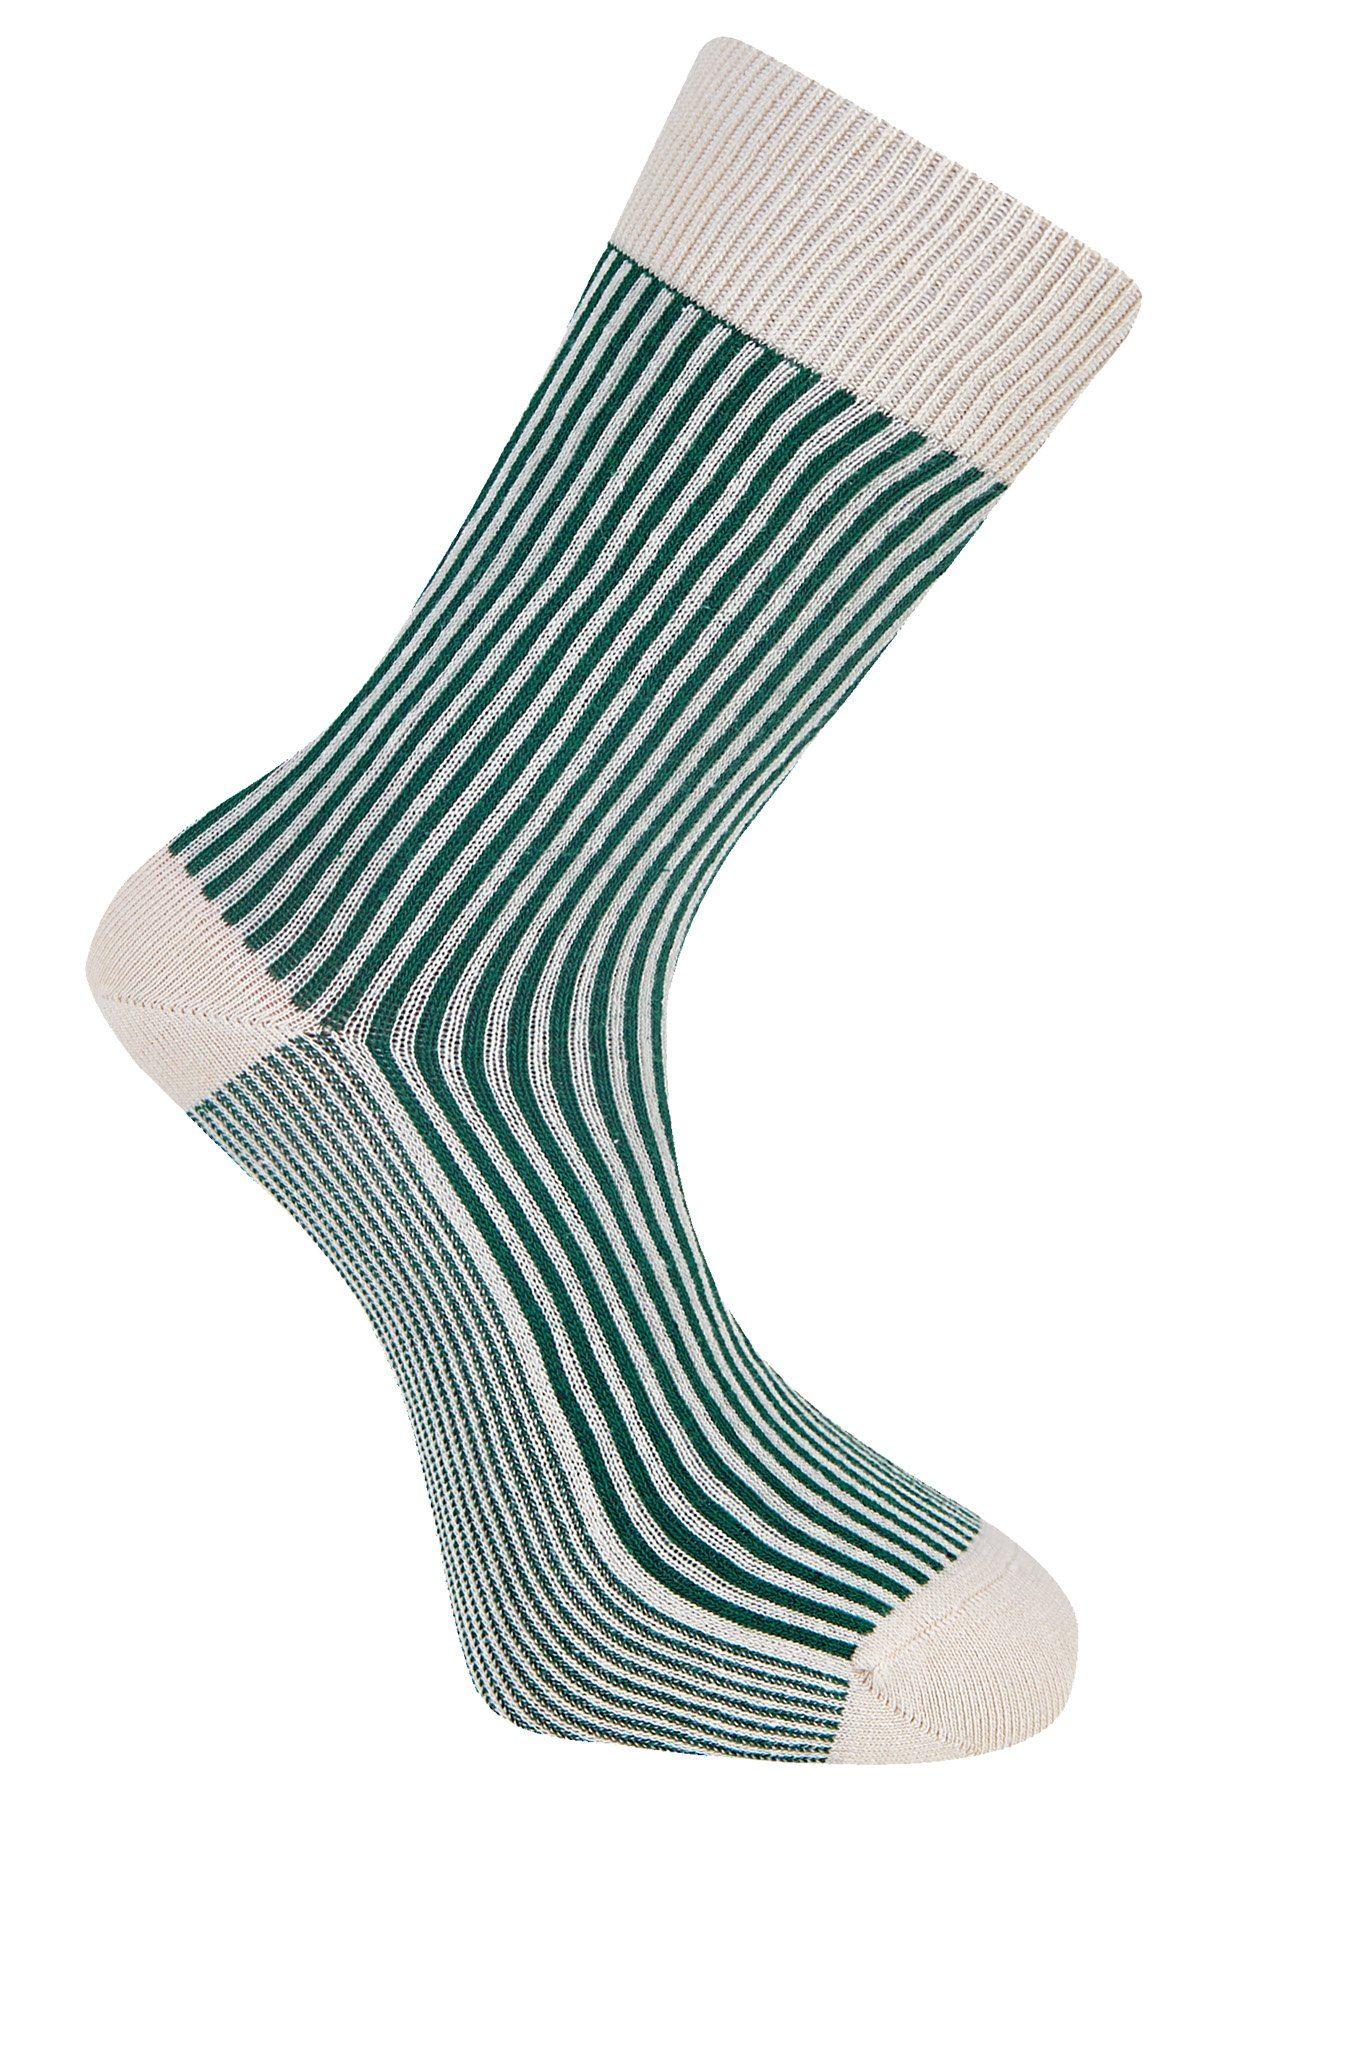 VERTICAL Emerald Organic Cotton Socks - Komodo Fashion